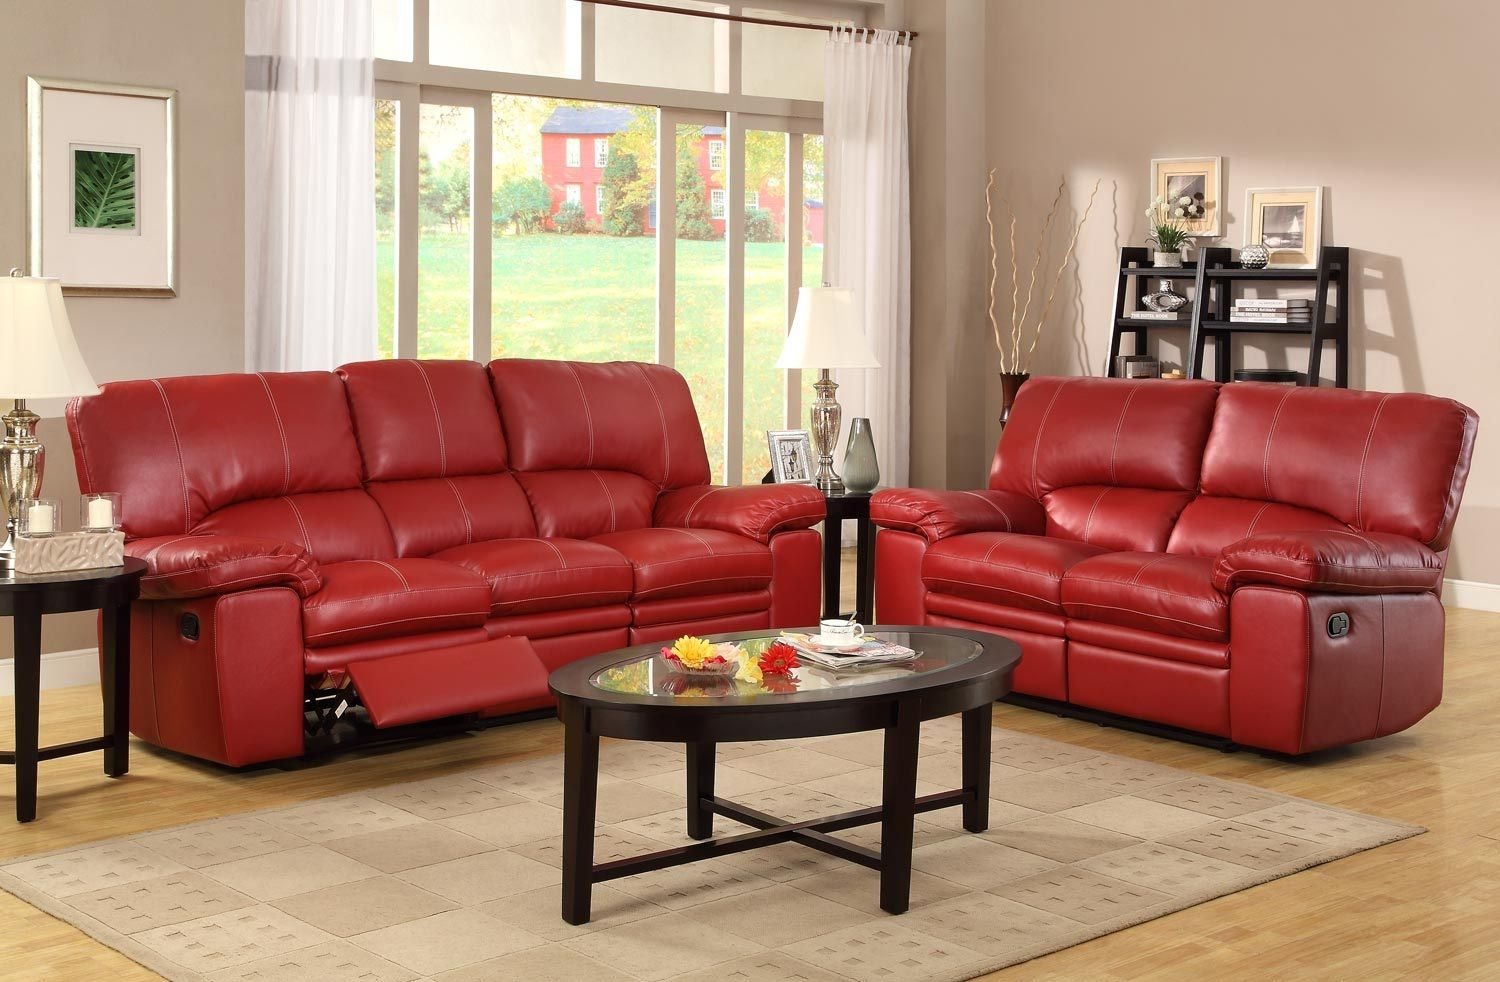 Make A Bold Statement In Your Living Area With 2018 Red Leather